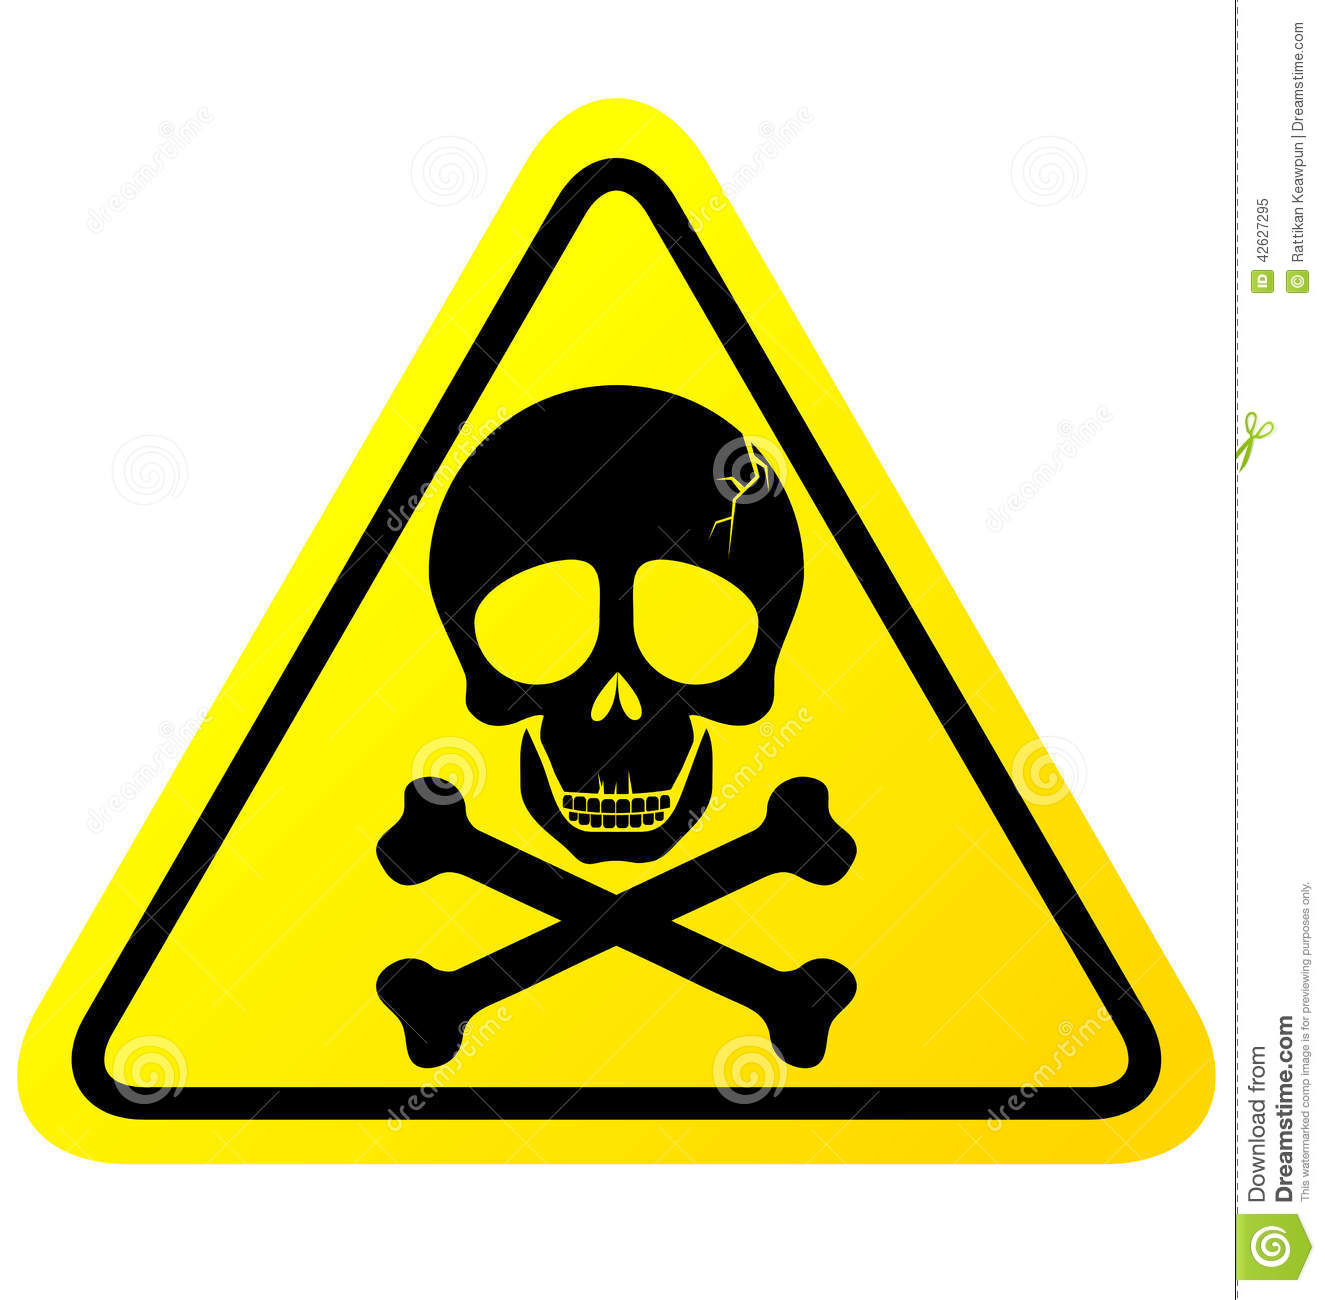 Skull Danger Sign Stock Vector - Image: 42627295